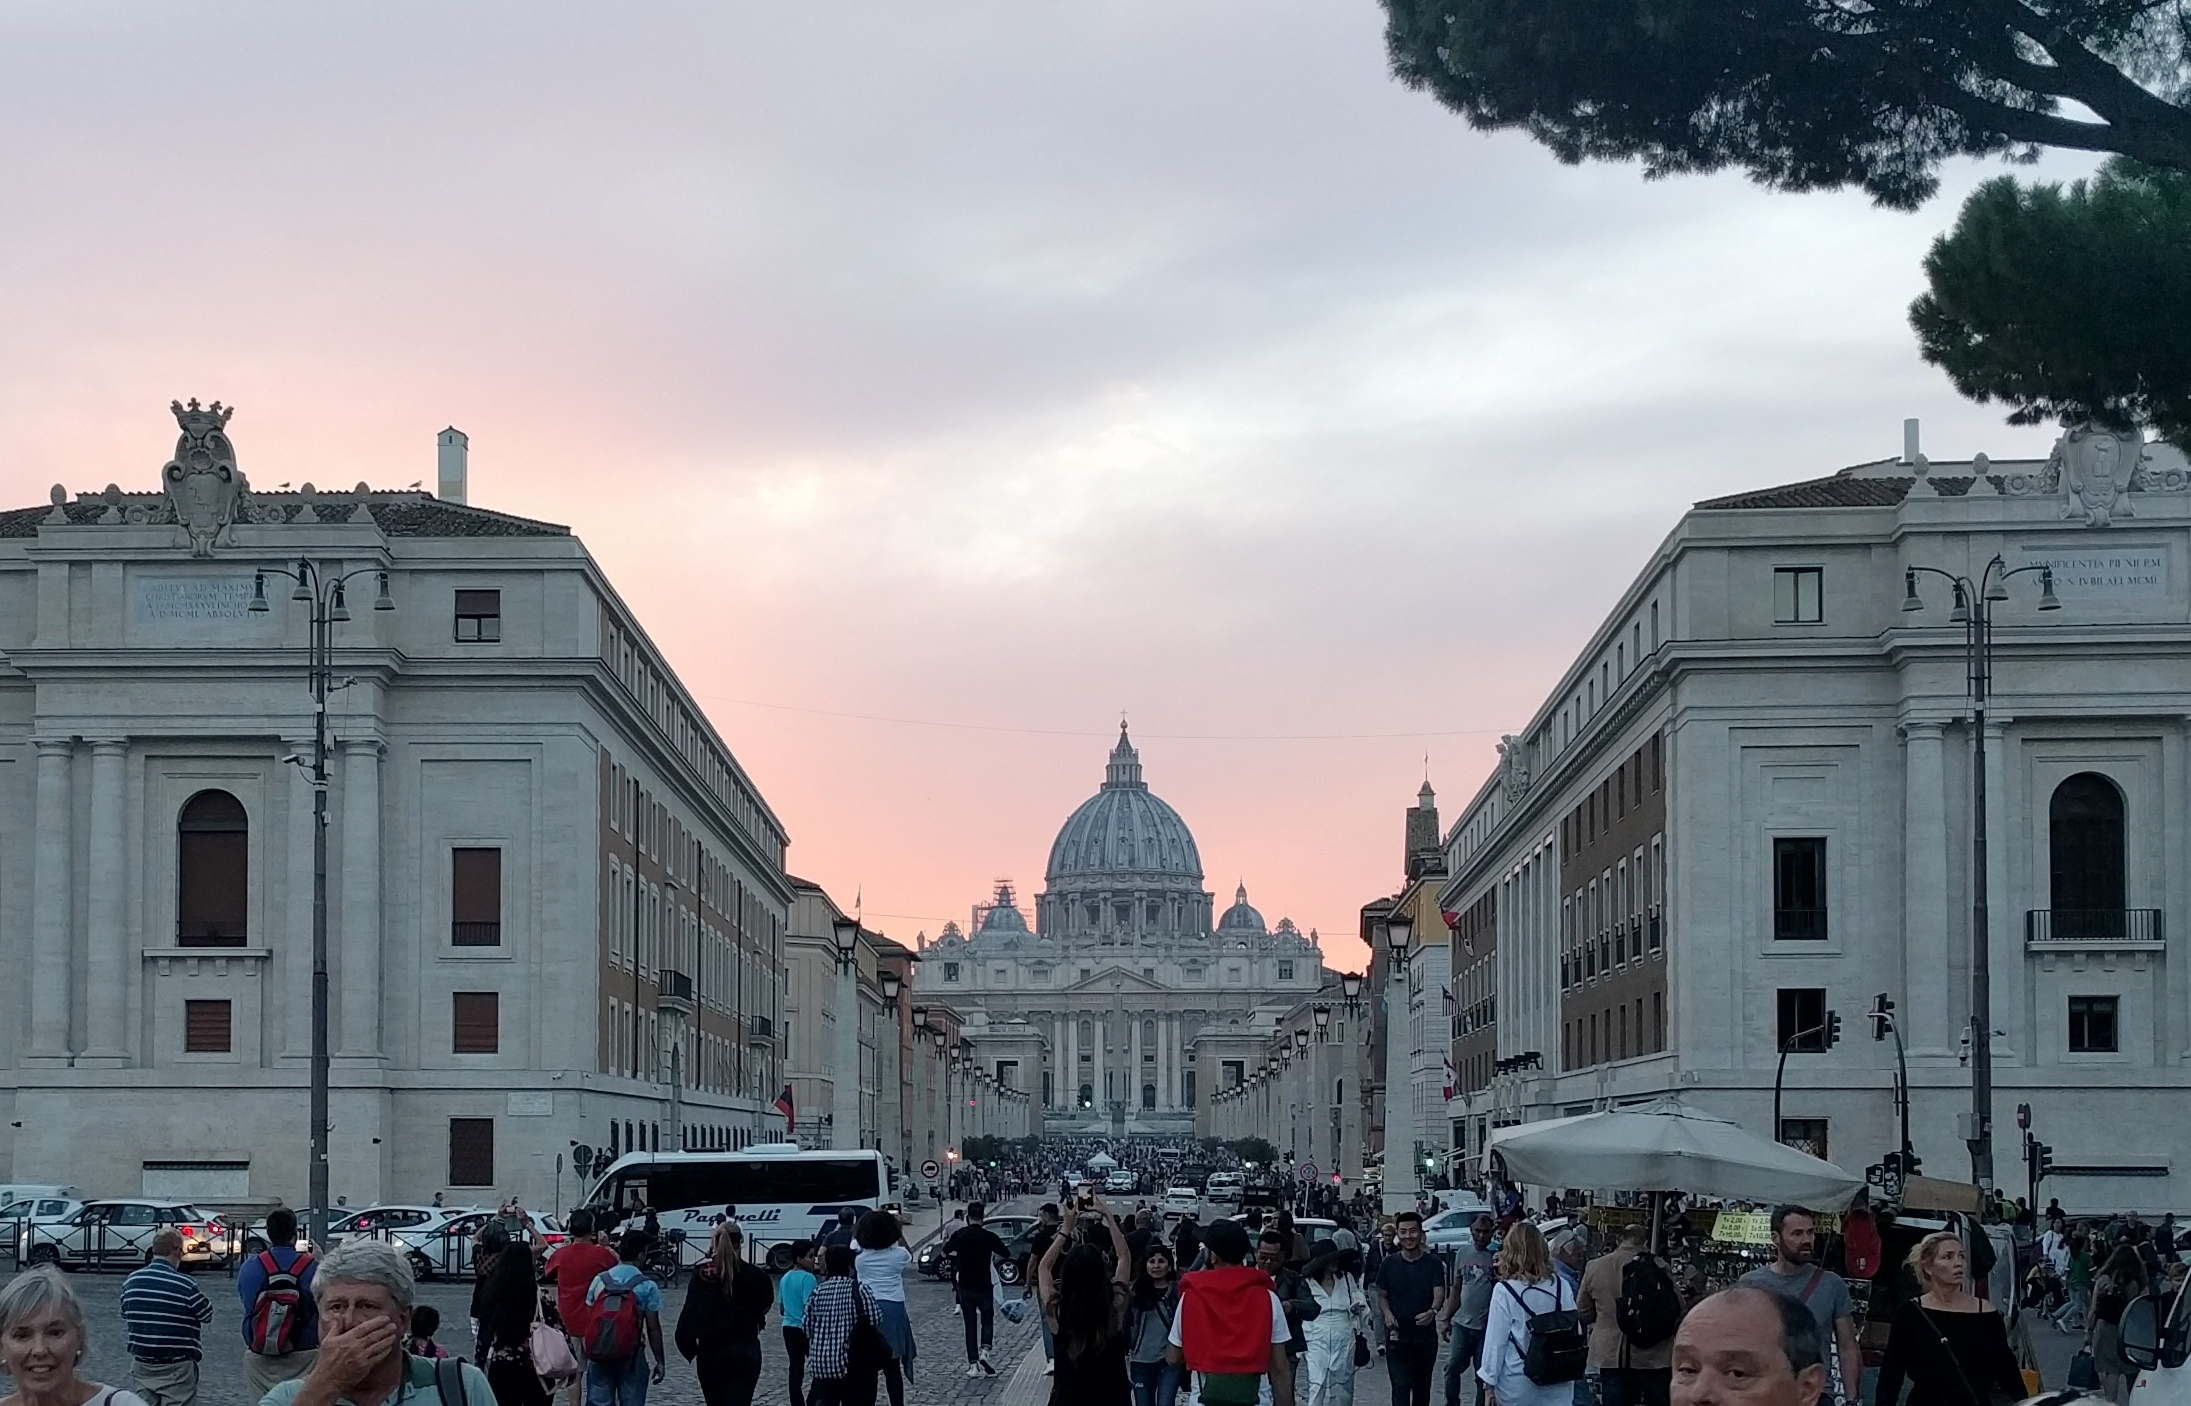 St. Peter's at sunset